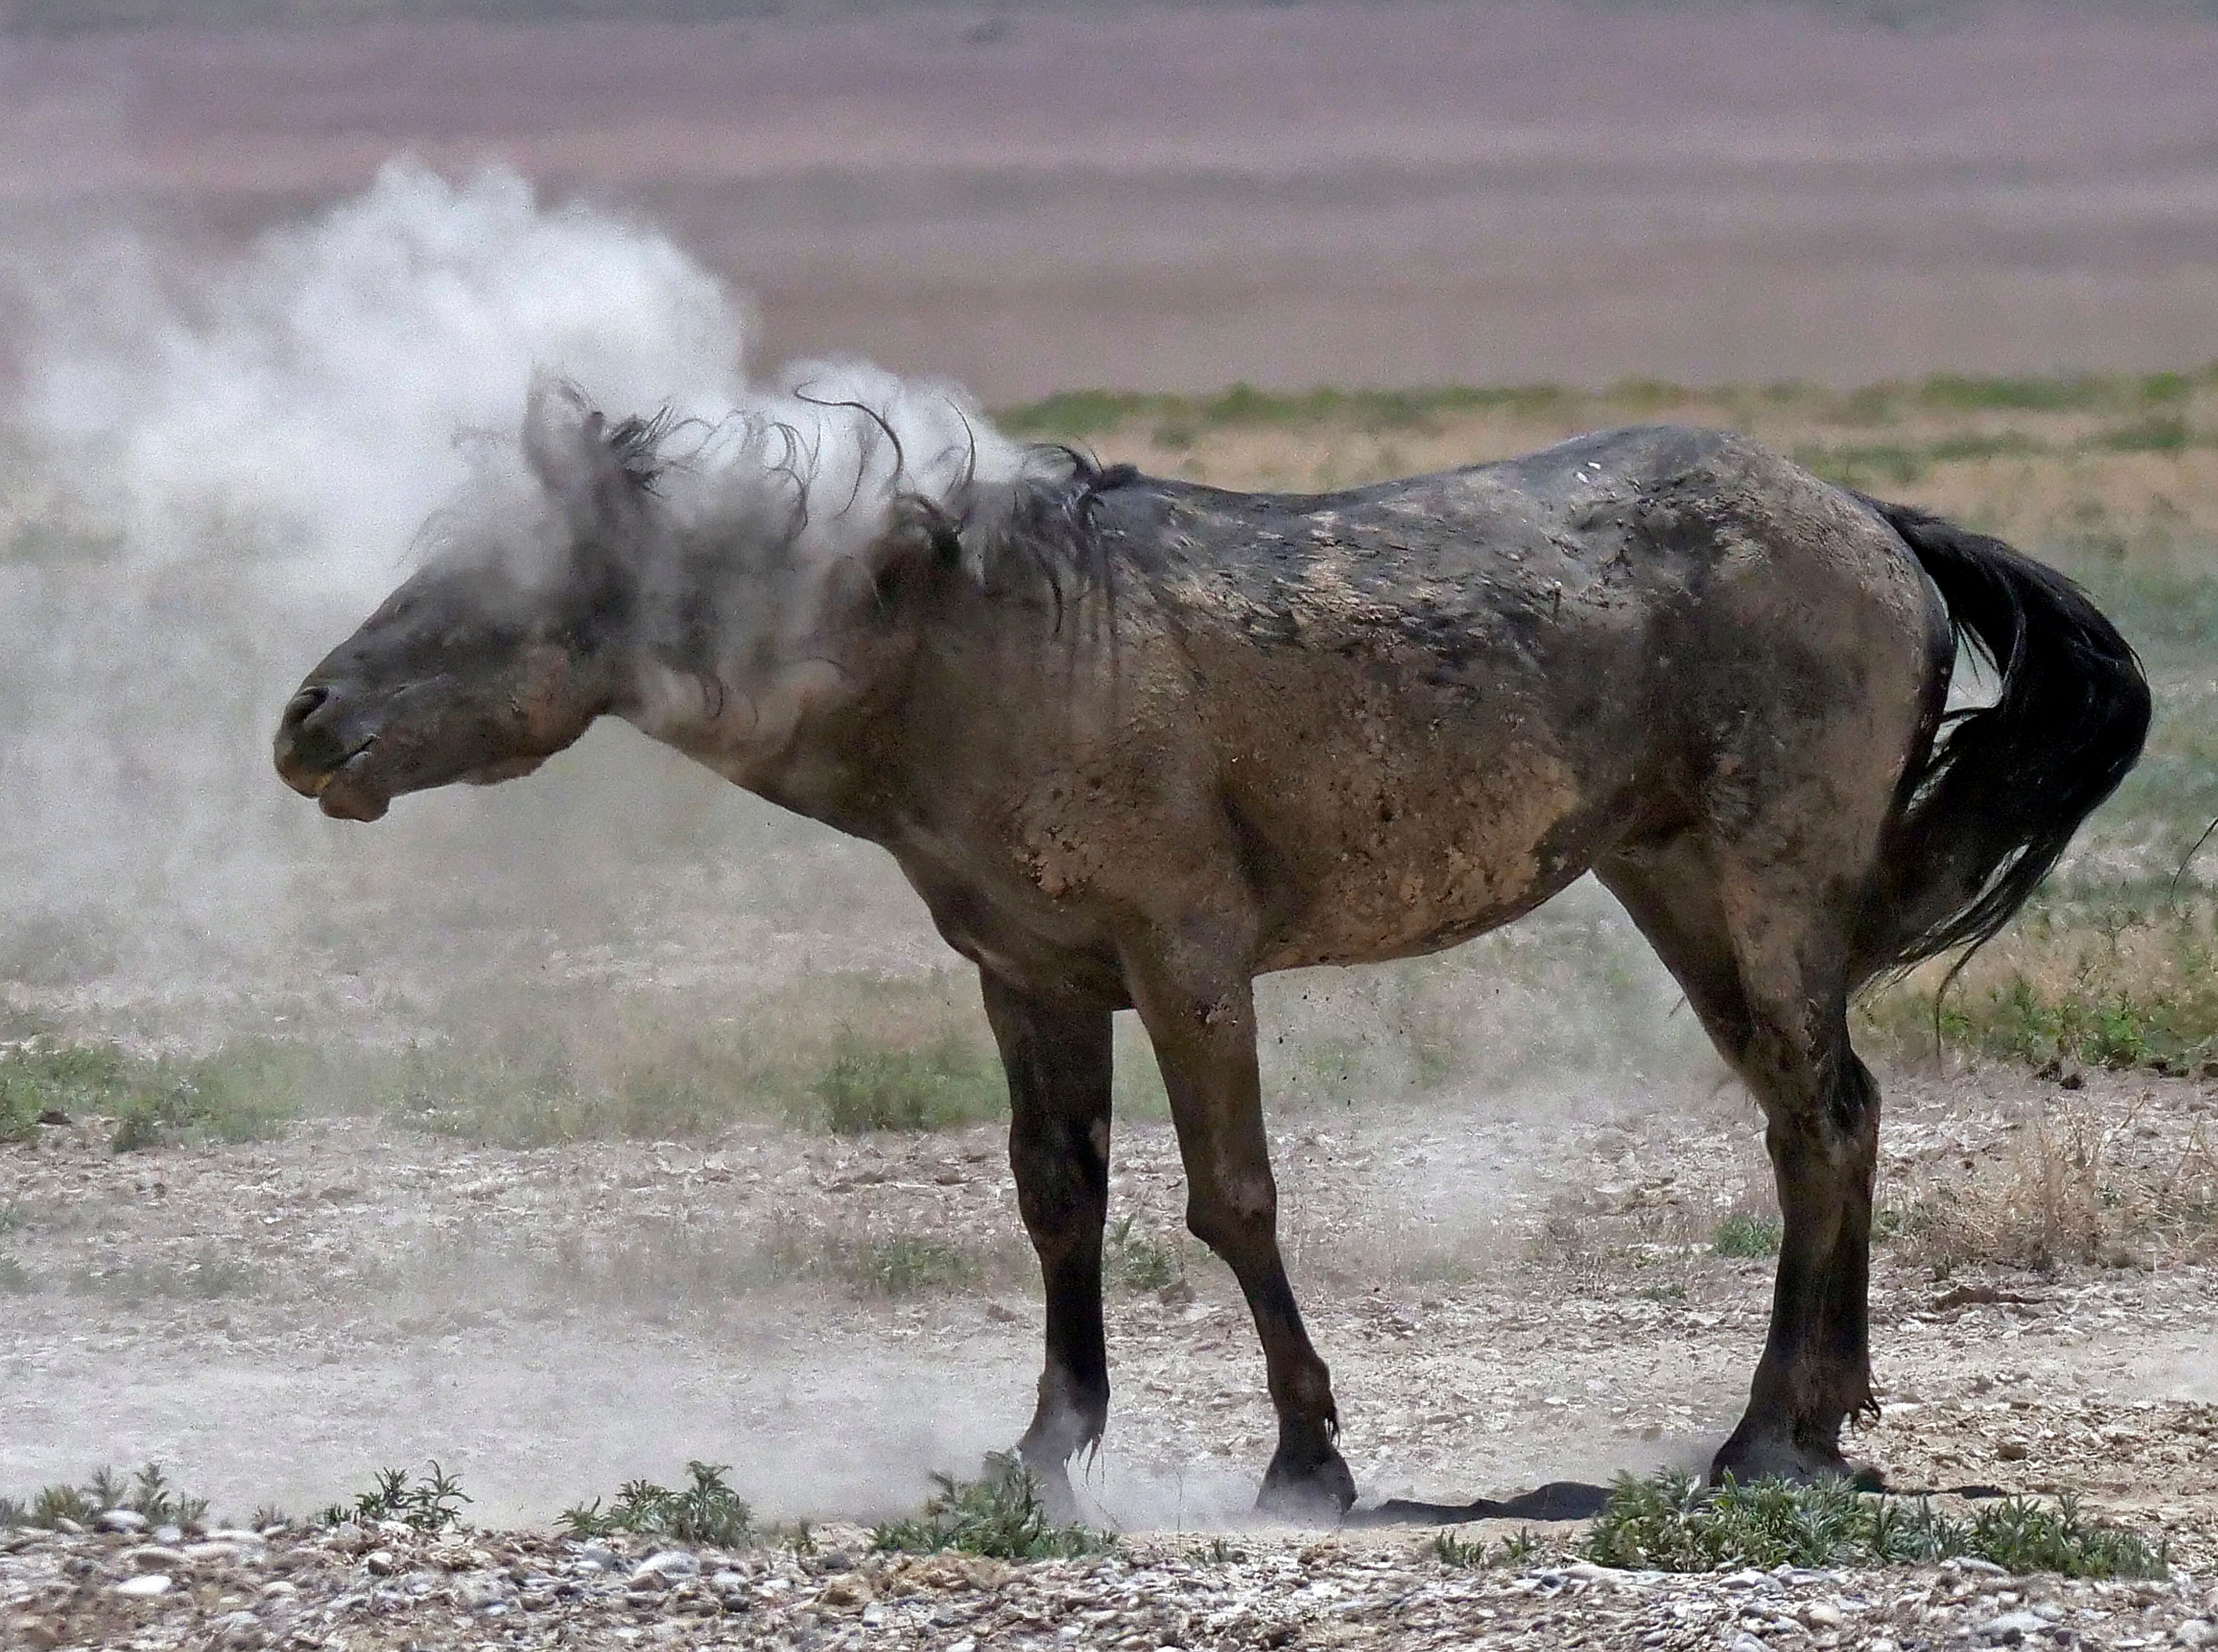 In this June 29, 2018 photo, a wild horse shakes off dust near a watering hole outside Salt Lake City. Harsh drought conditions in parts of the American West are pushing wild horses to the brink and forcing extreme measures to protect them.